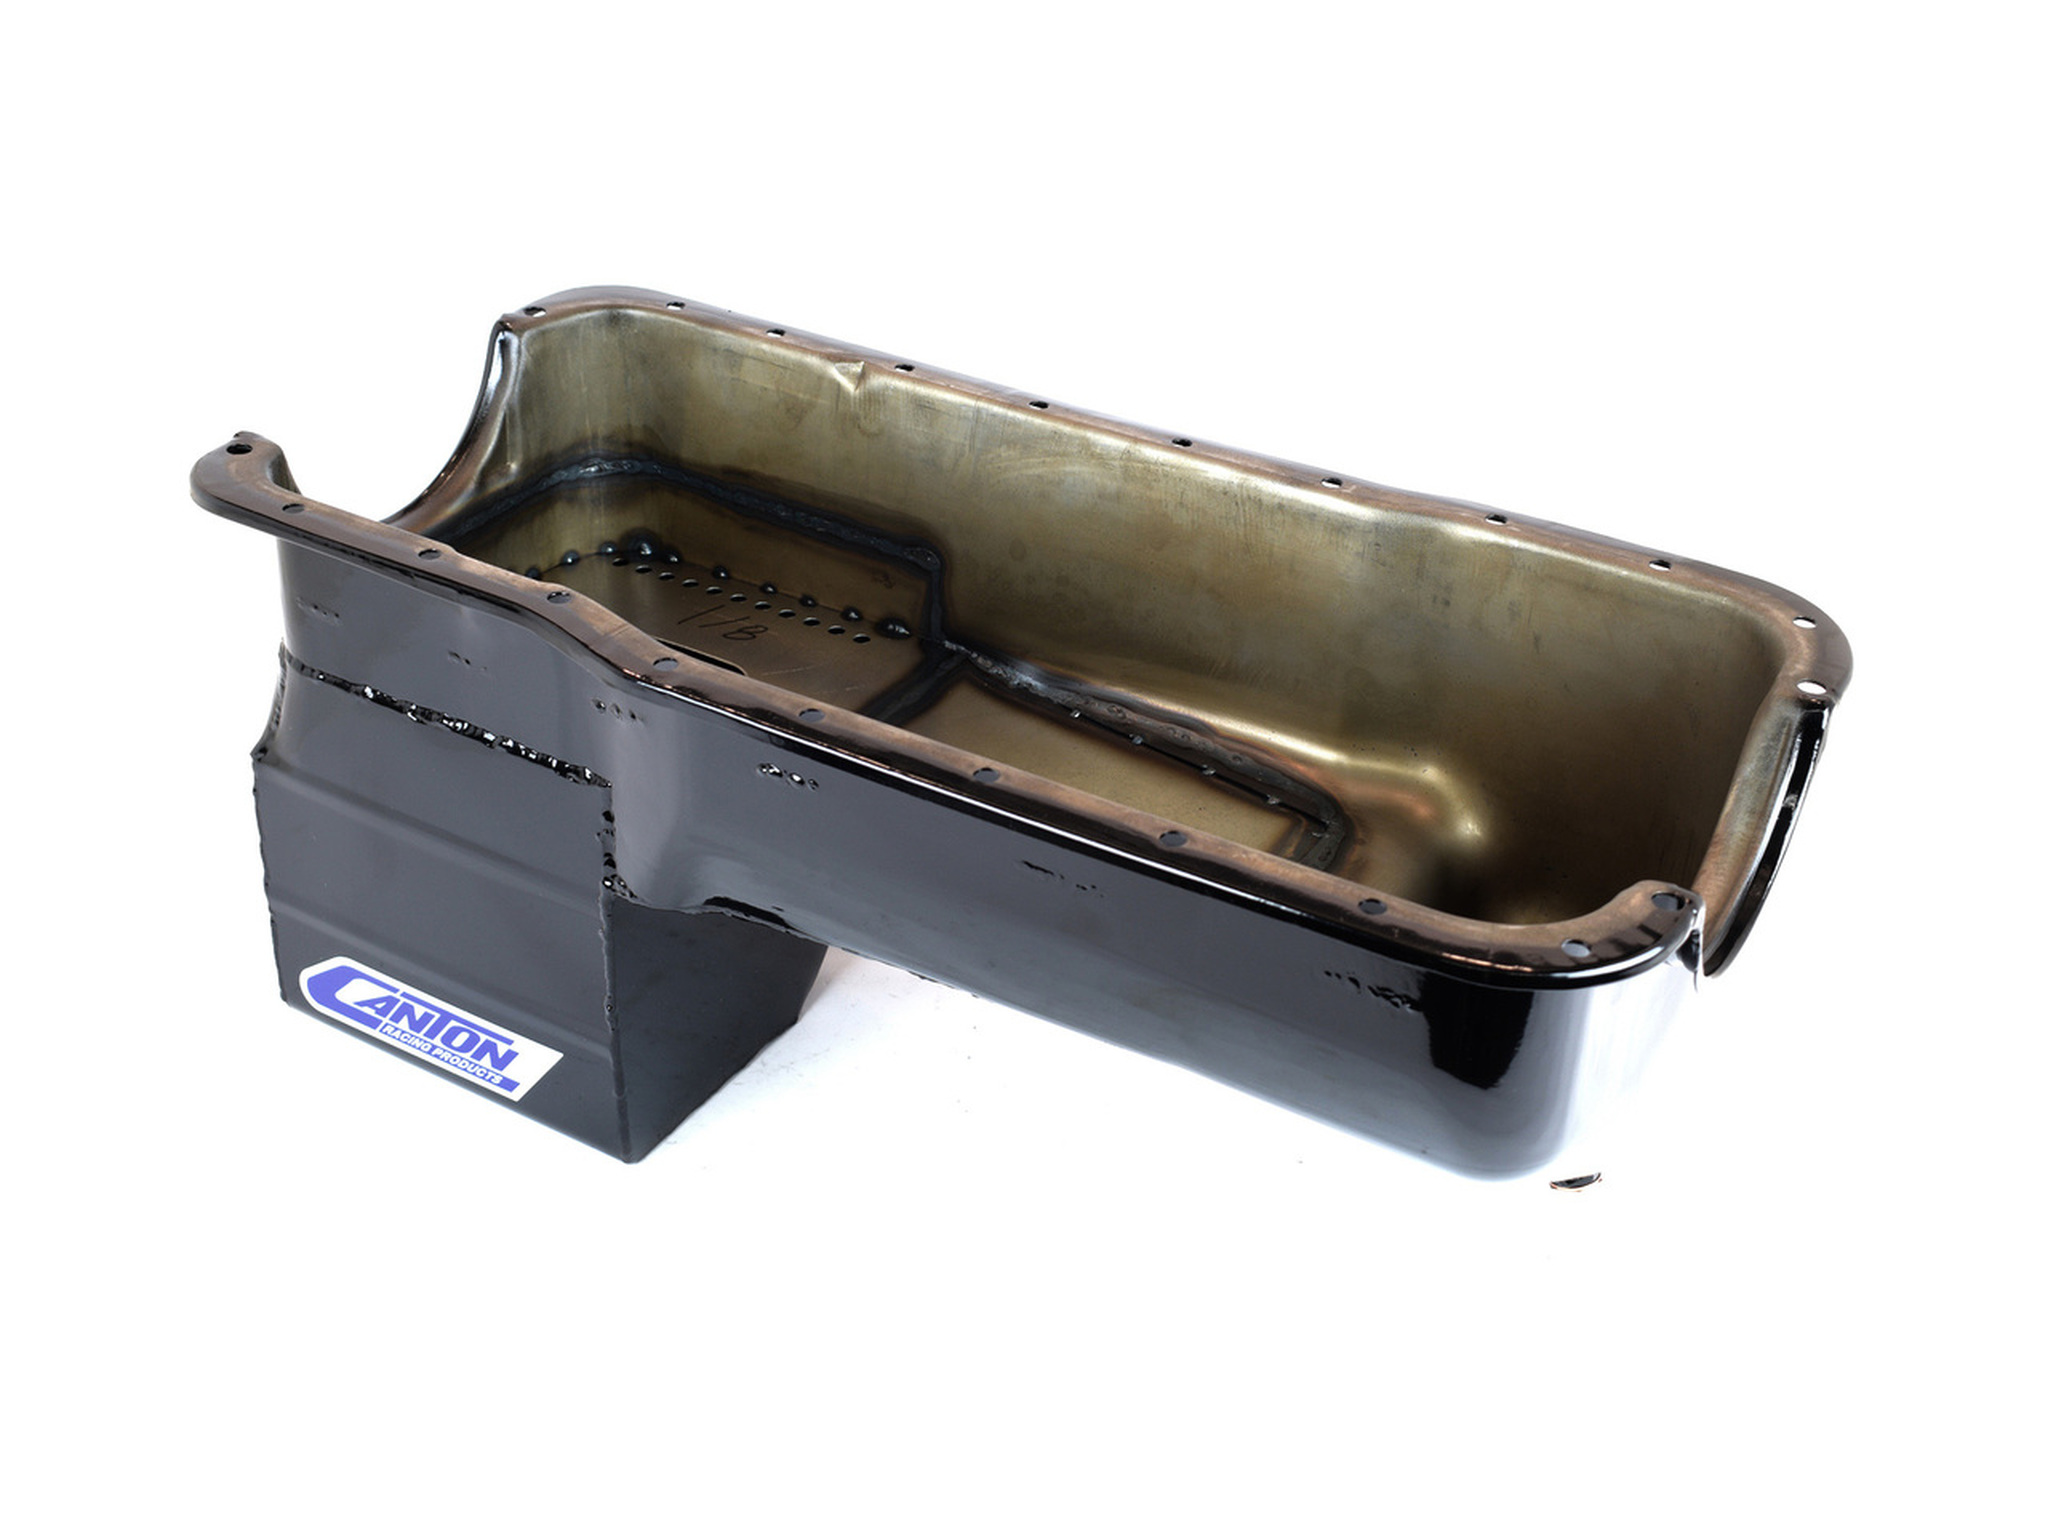 Image for product canton-racing-6-quart-rear-sump-oil-pan-kit-351-slight-scuffs-scratches